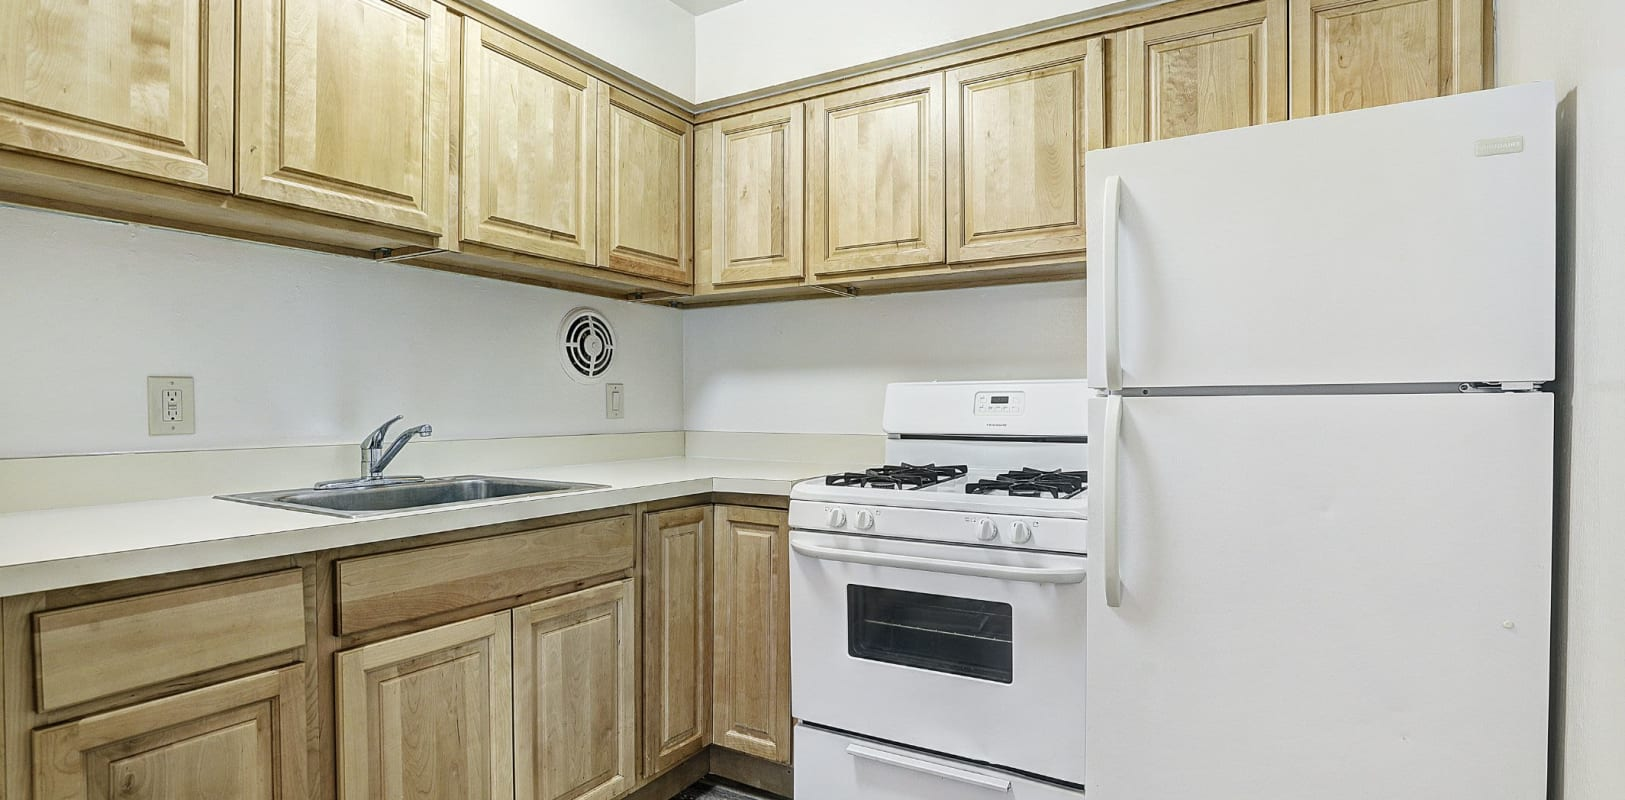 Fully equipped kitchen at Garret Village Apartments in Clifton, New Jersey